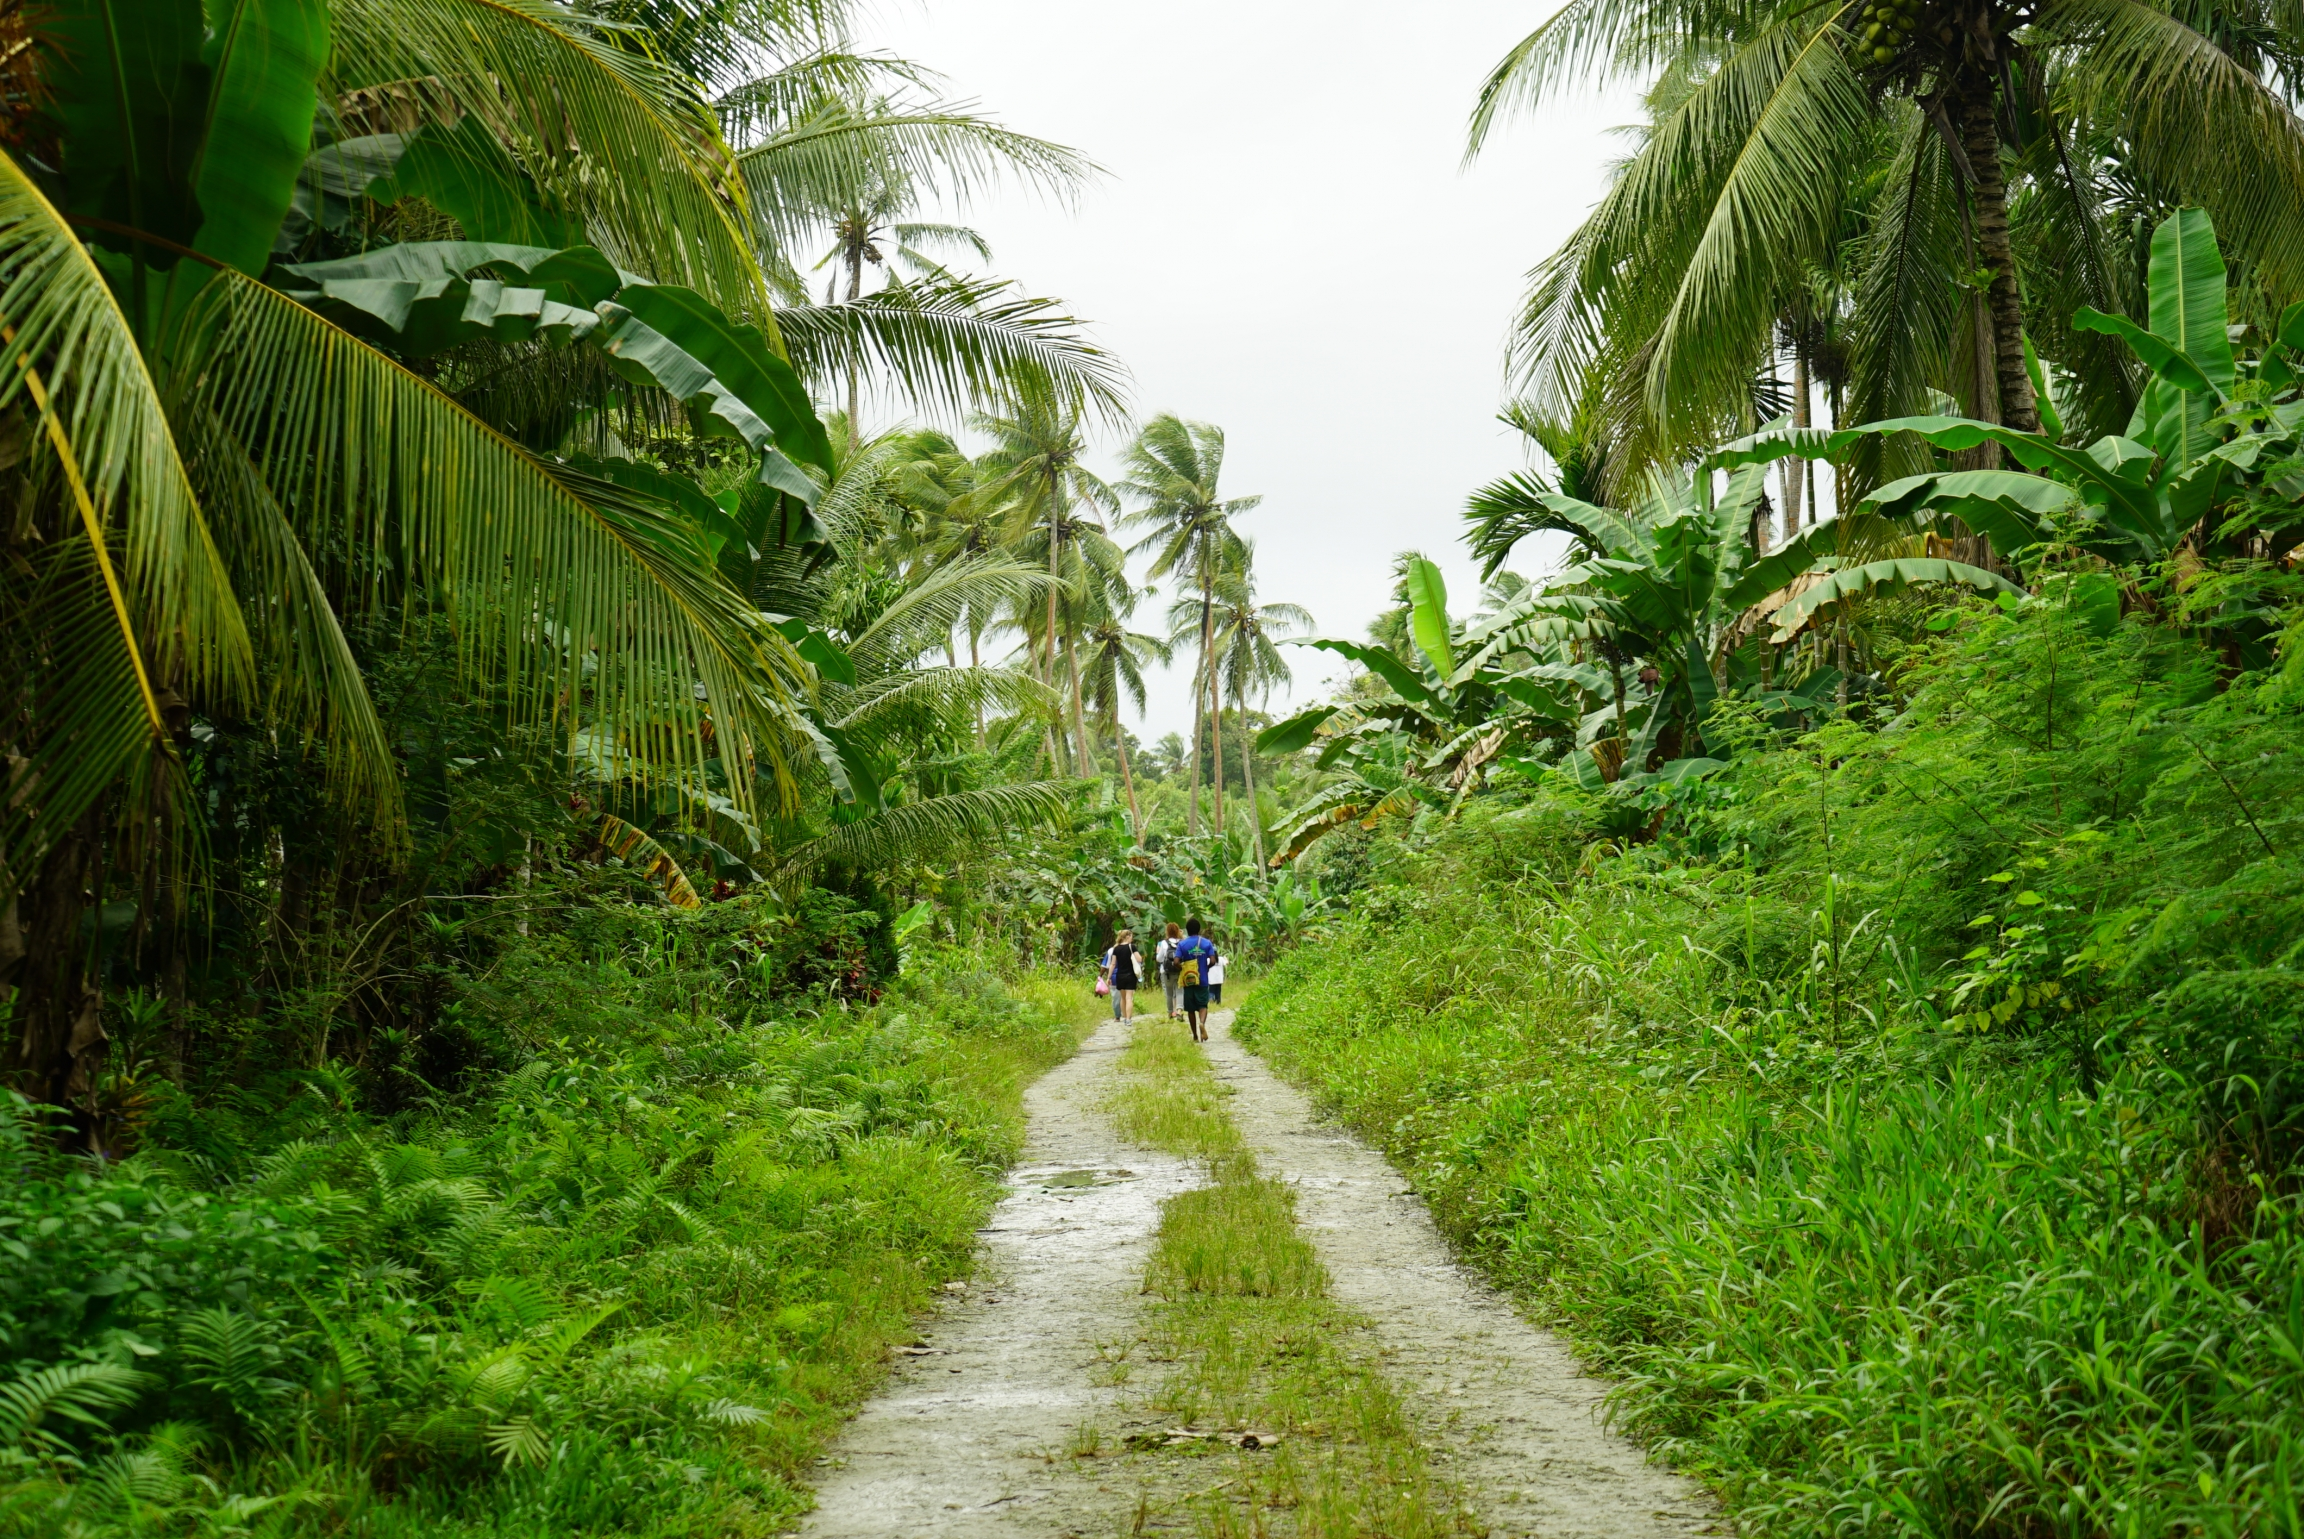 Lush greenery surrounds a narrow pitted dirt road.